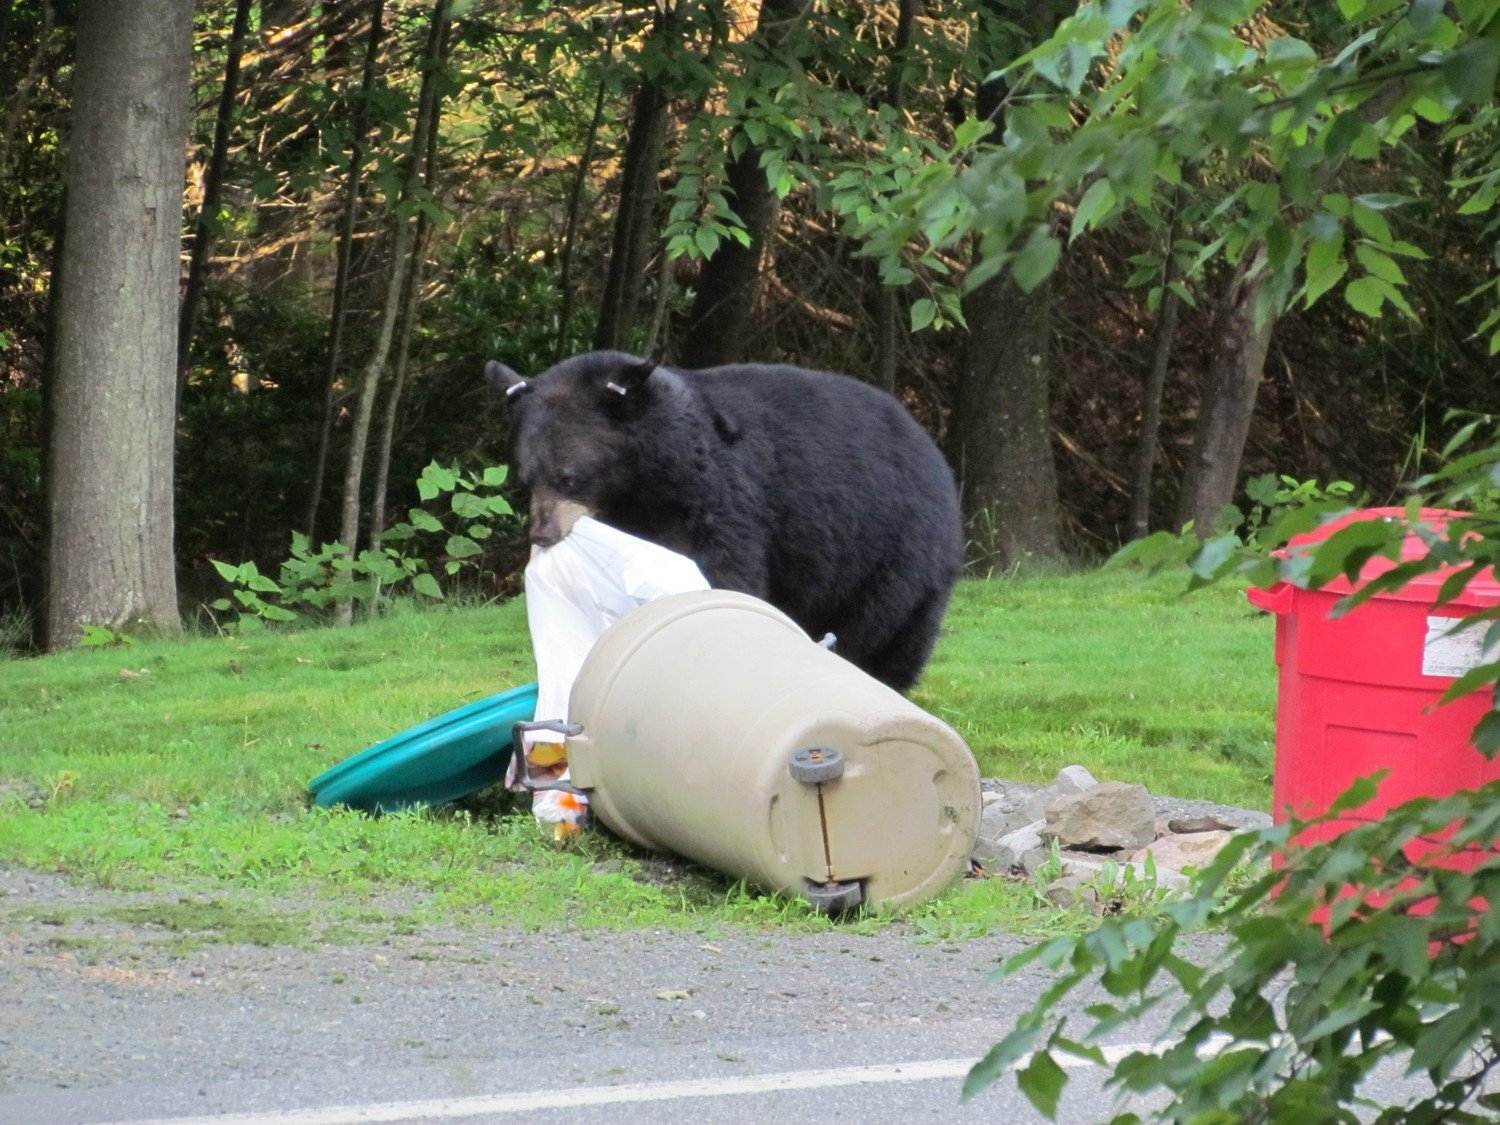 Community Ordinances (Anti-feeding Regs for Bears)